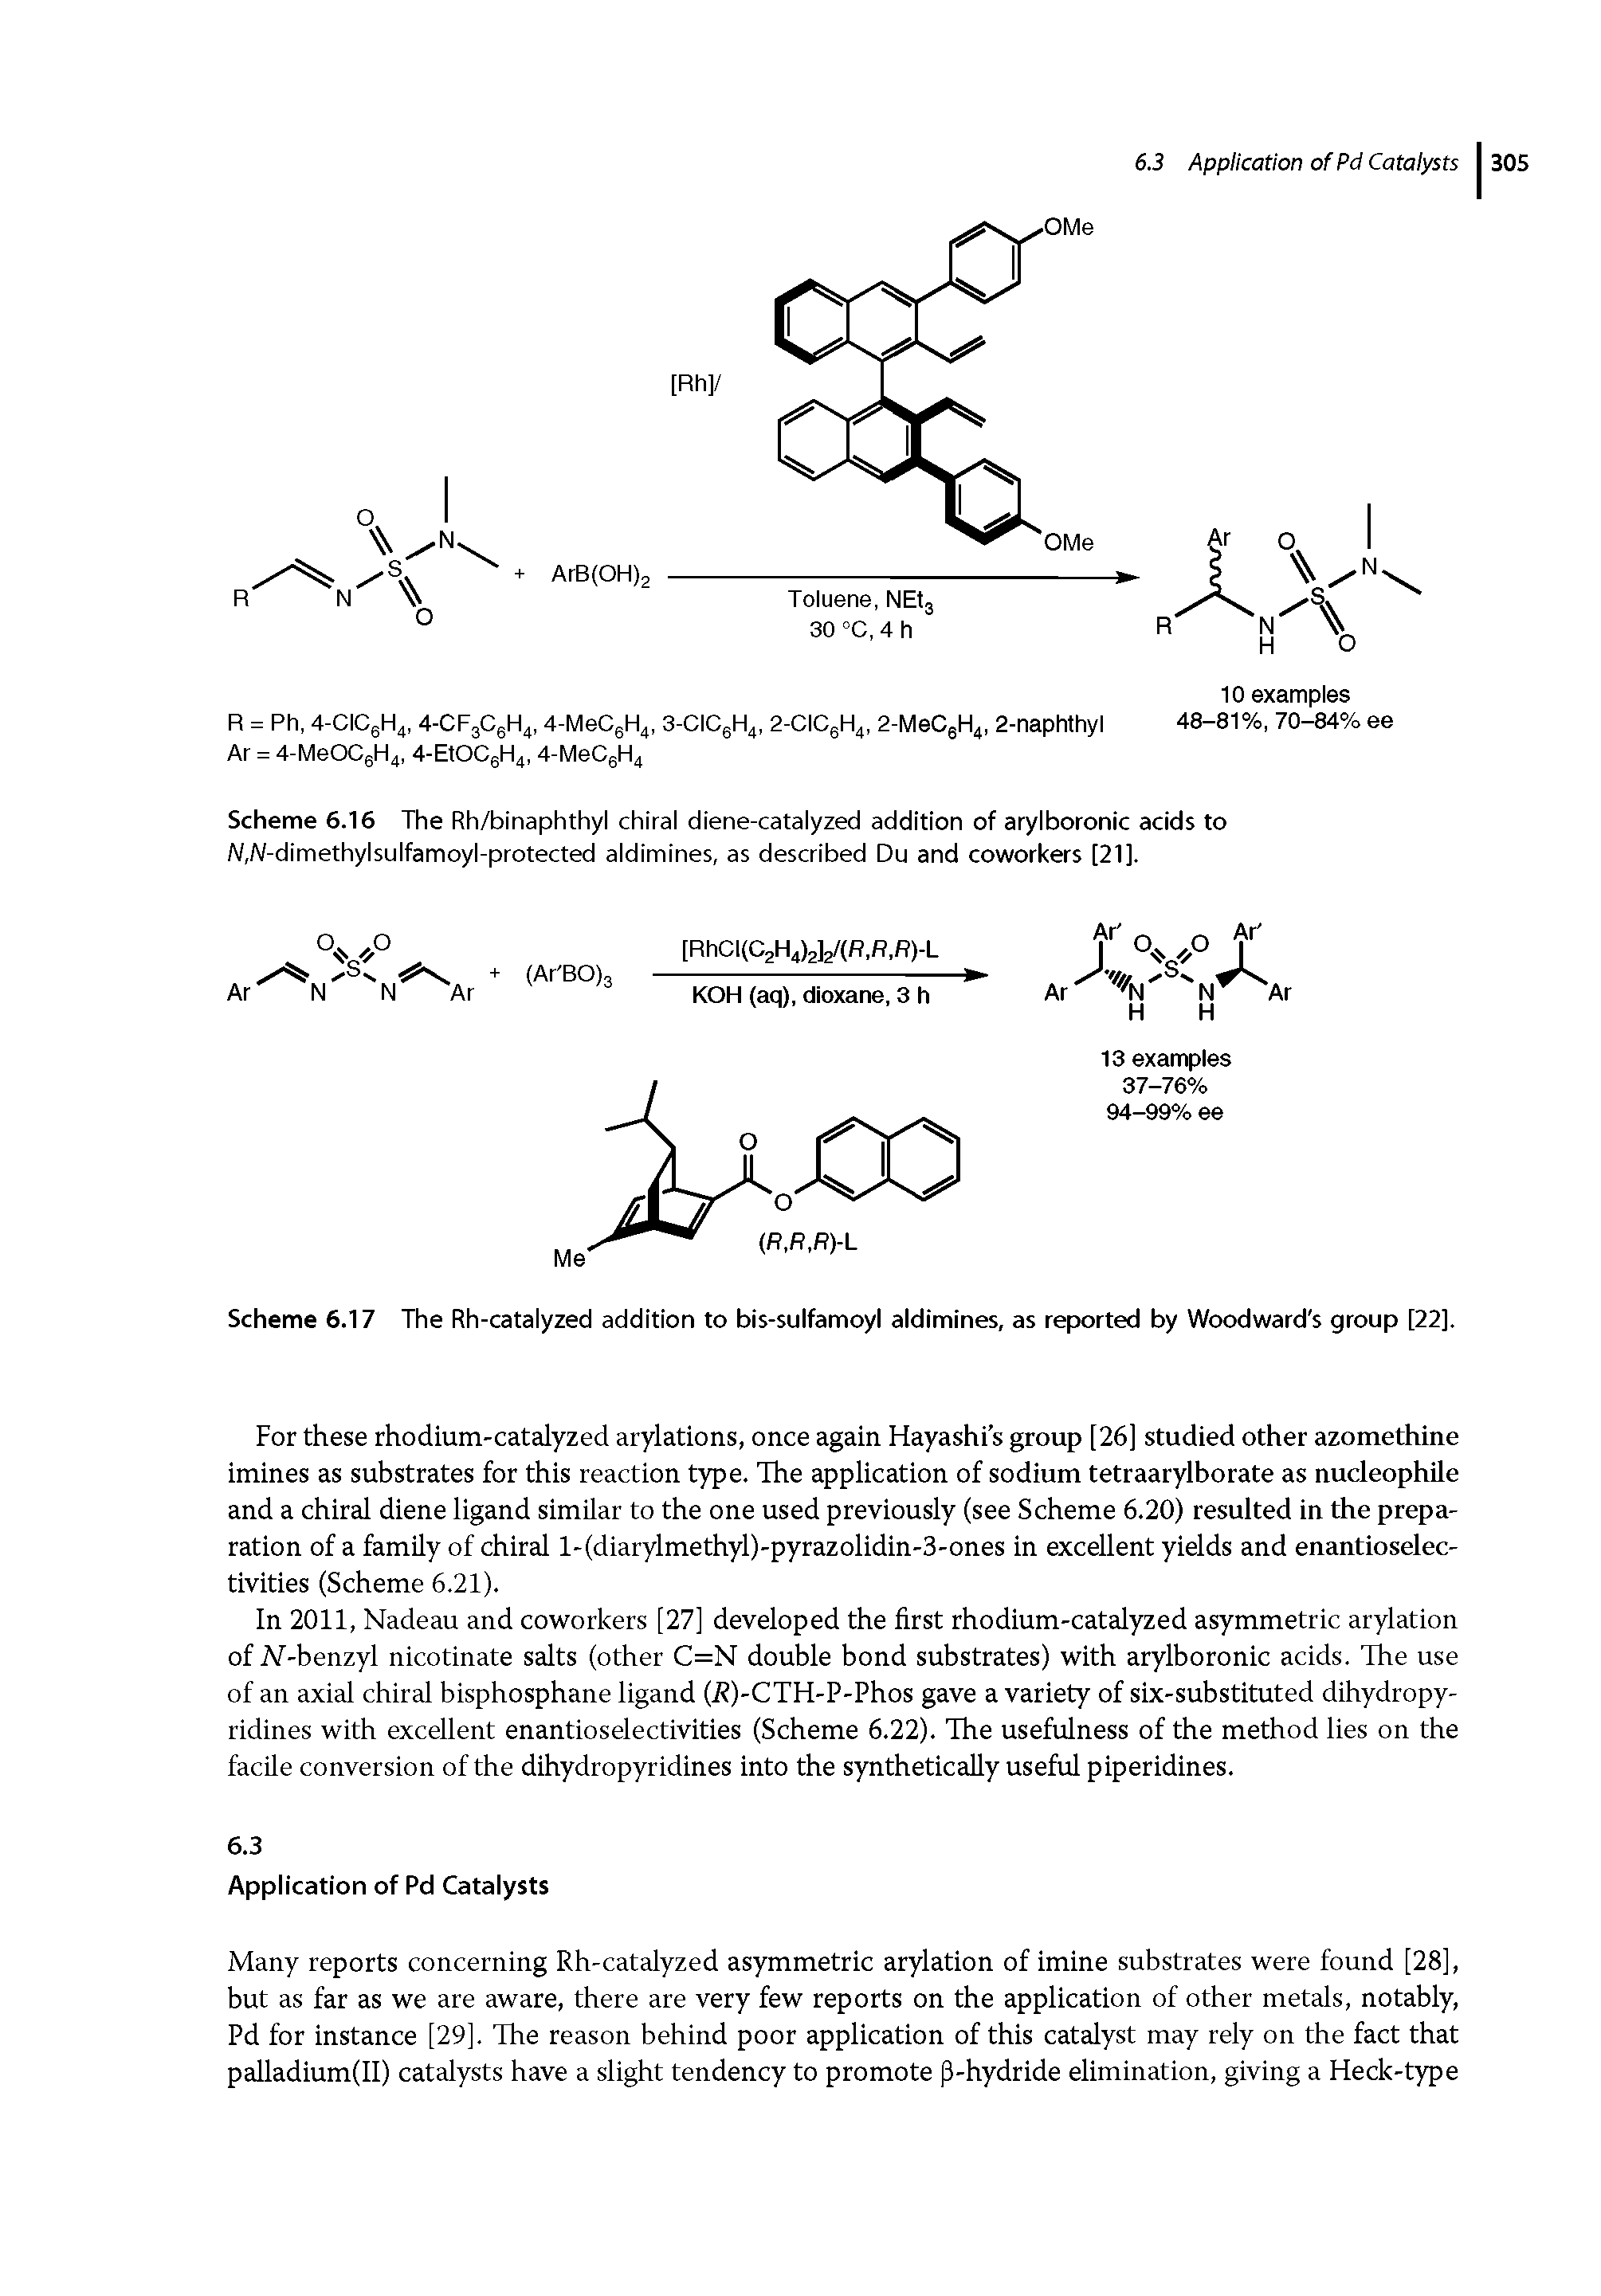 "Scheme 6.16 The Rh/binaphthyl chiral <a href=""/info/diene_nd_catalyzed"">diene-catalyzed</a> addition of <a href=""/info/arylboronic_acids"">arylboronic acids</a> to W,W-dimethylsulfamoyl-protected aldimines, as described Du and coworkers [21]."